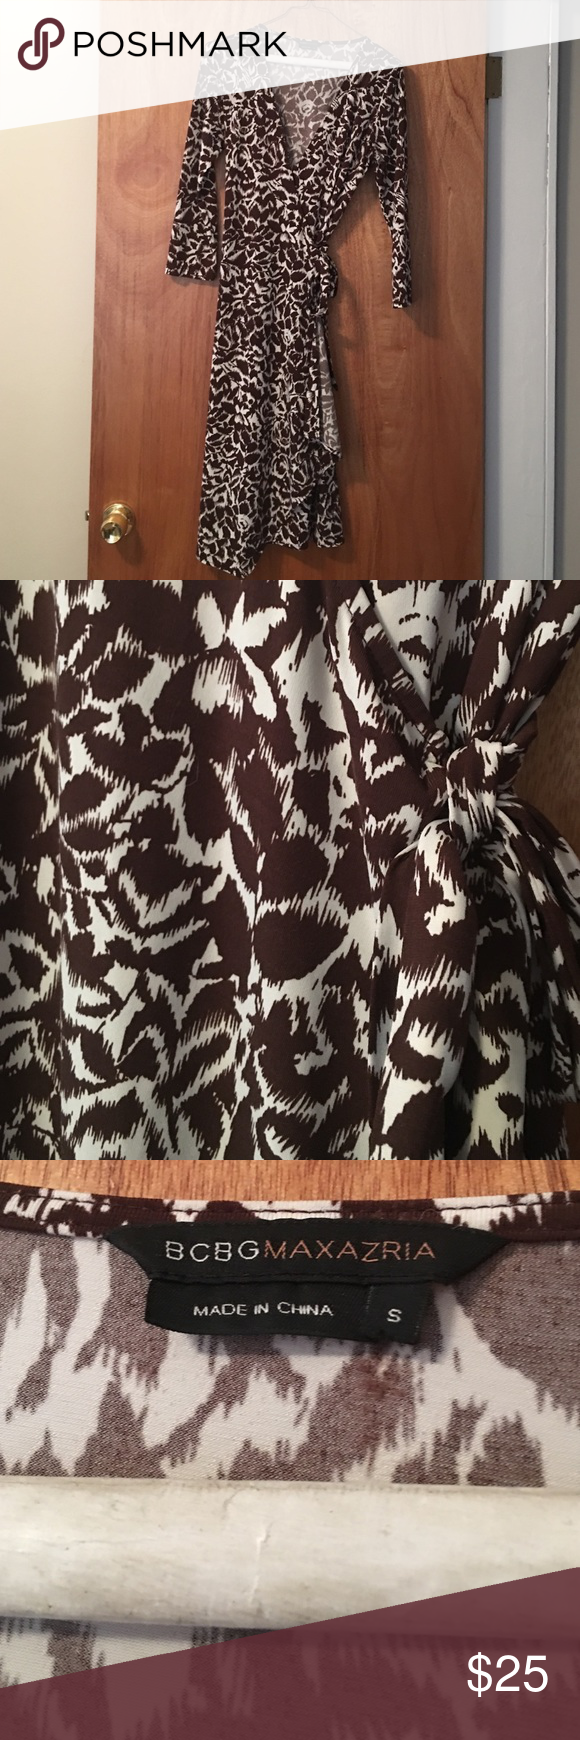 Printed BCBG wrap dress Brown and white flower printed wrap dress. 3/4 length sleeves. Length is 37 inches. Fabric is 94% polyester, 6% spandex. Excellent condition! BCBG Dresses